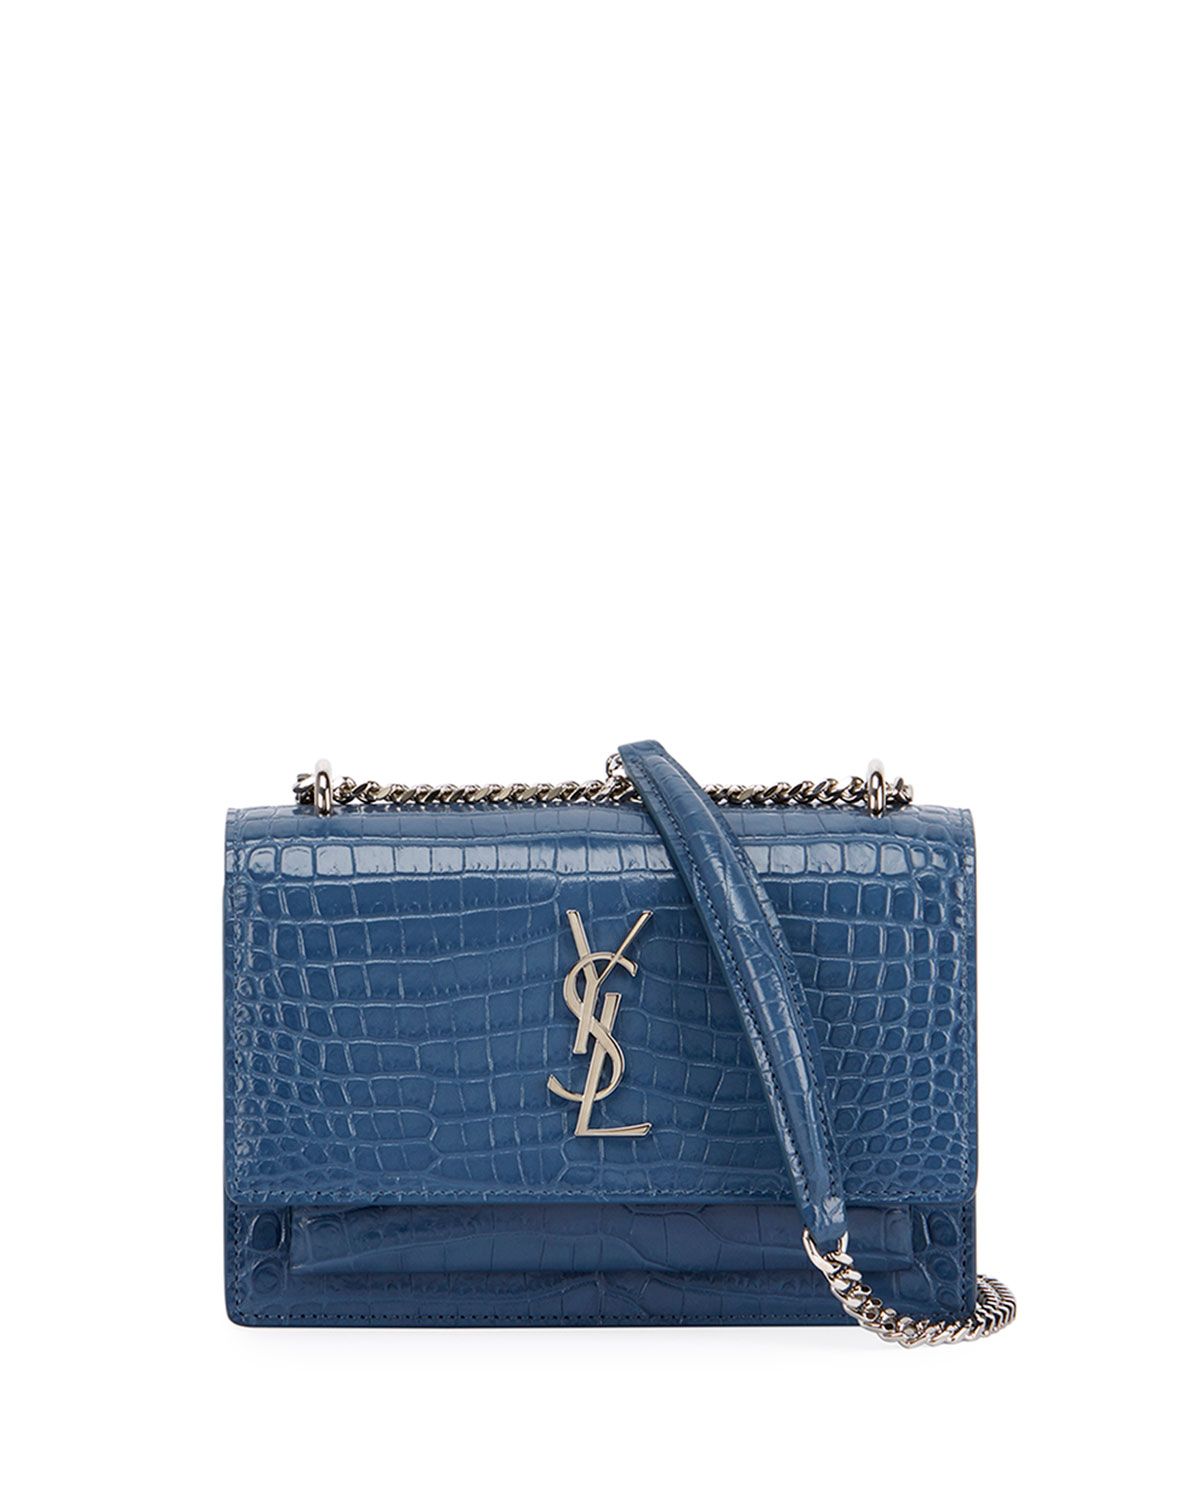 d5d680dcf5 Saint LaurentSunset Monogram YSL Small Crocodile Embossed Wallet on Chain